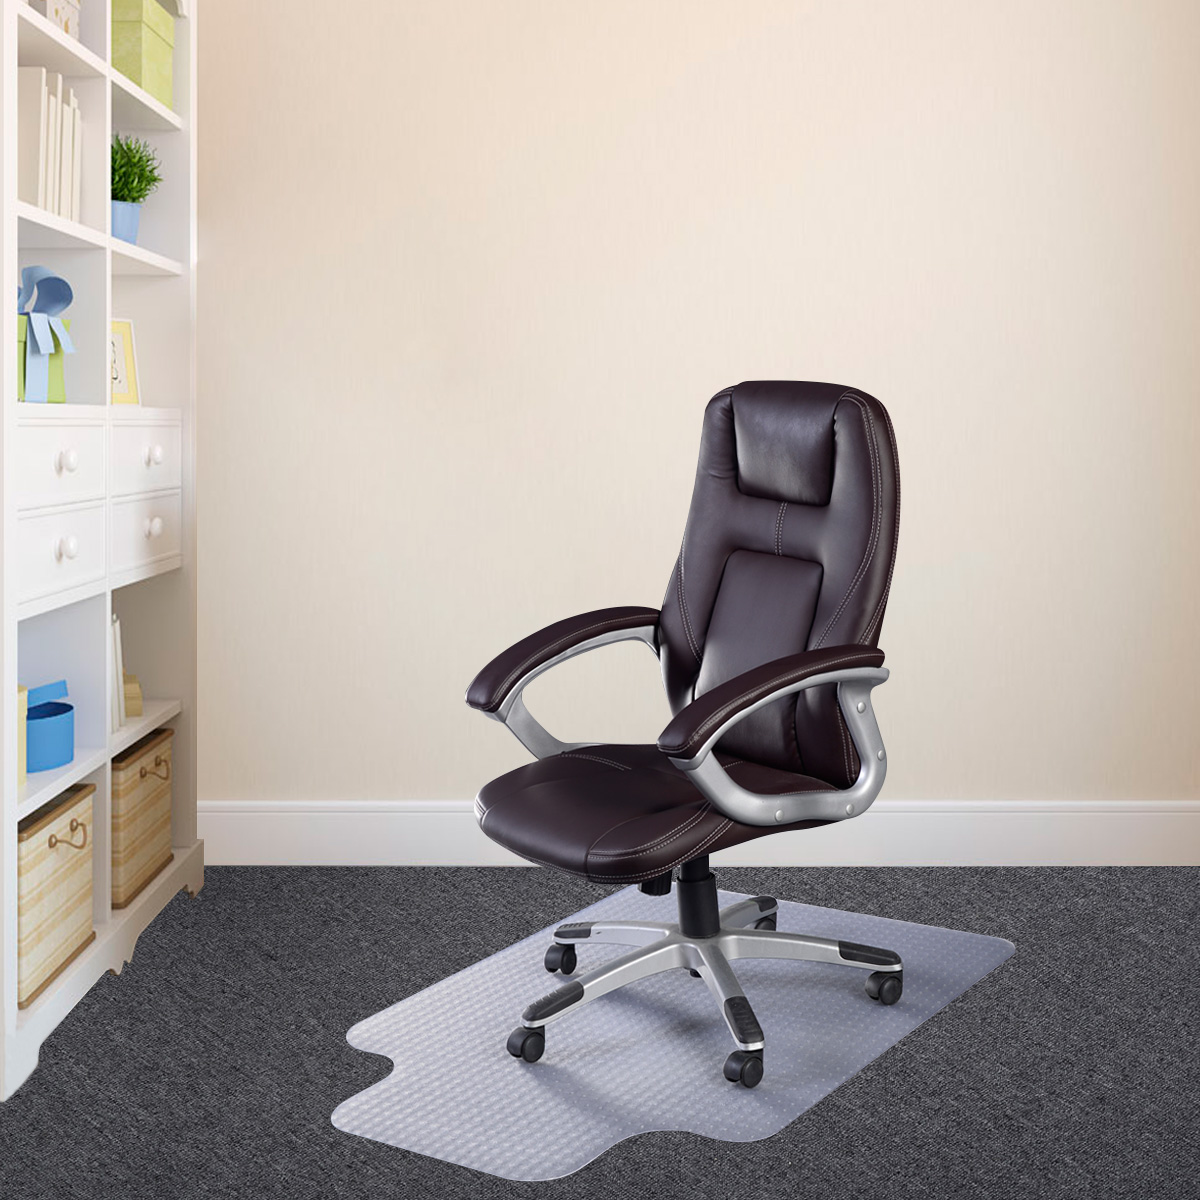 Standard Pile Carpet Chair Office Mat With Lip   Chair Mats   Office U0026 Chair  Mats   Office Supplies